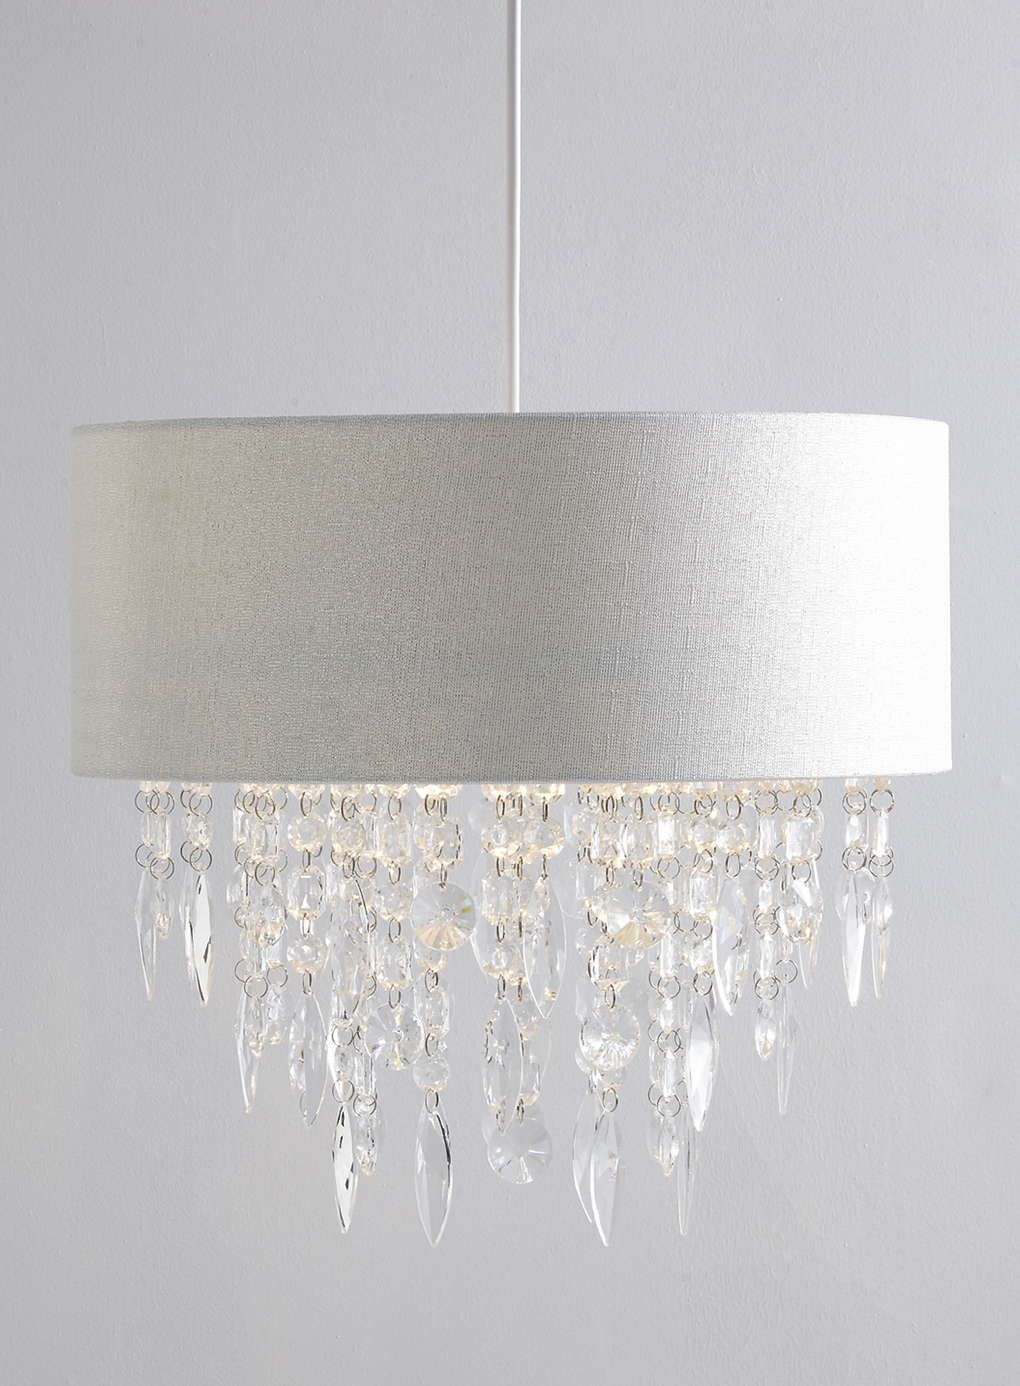 Photo 1 of Silver Fiji Easy to Fit Ceiling Light | Lounge ideas ...